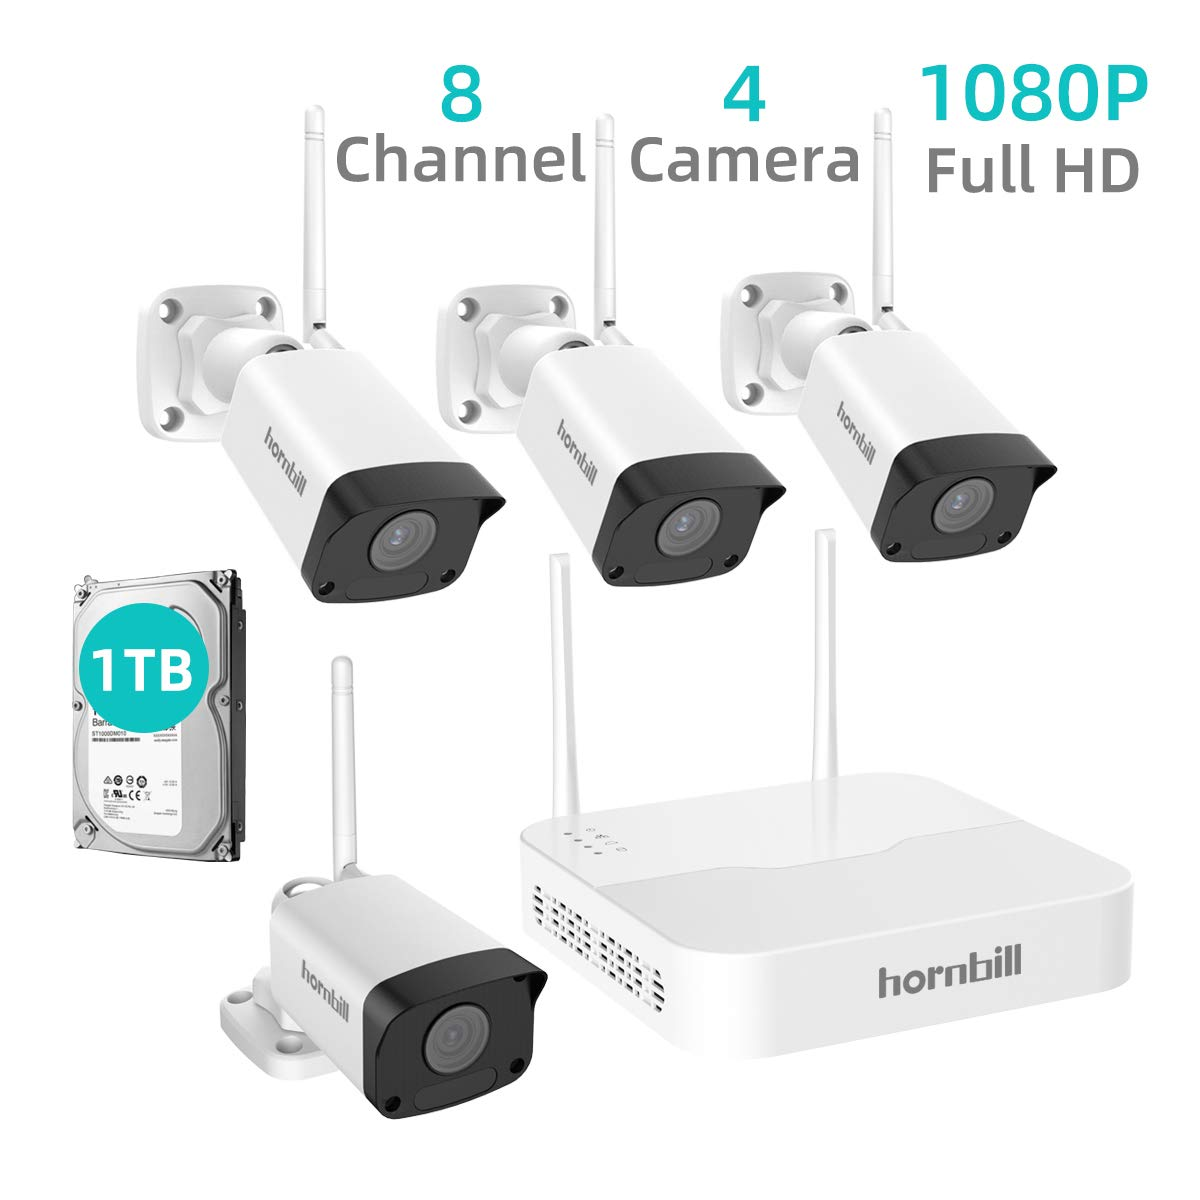 Security Camera System Wireless,Hornbill 8 Channel 1080P Outdoor Home WiFi Security Surveillance Camera System,4pcs 1080P IP Security Camera and 1TB Hard Drive Installed No Monthly Fee by hornbill